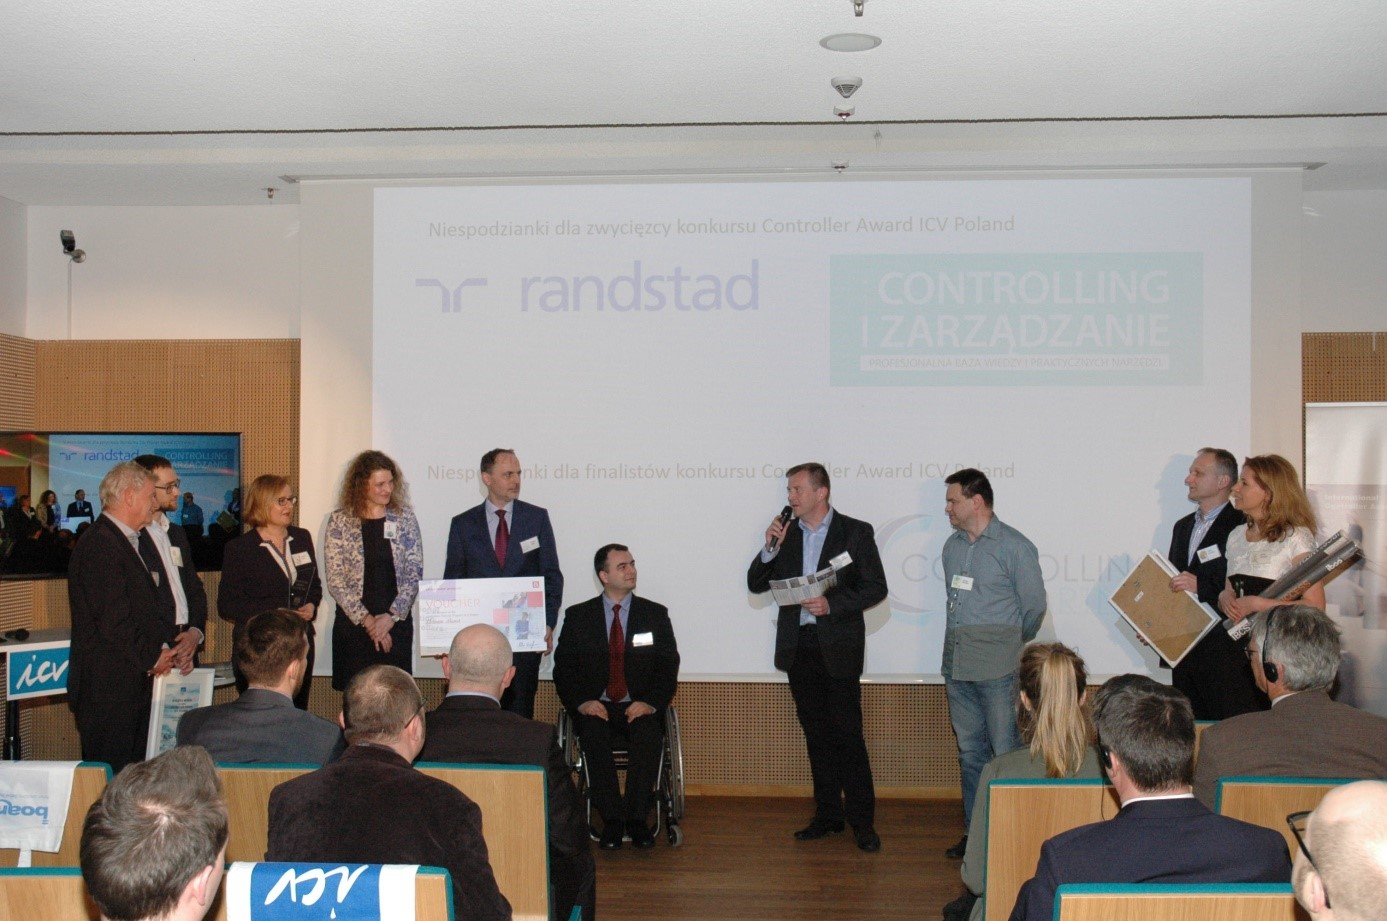 Controller Award Poland - Winners